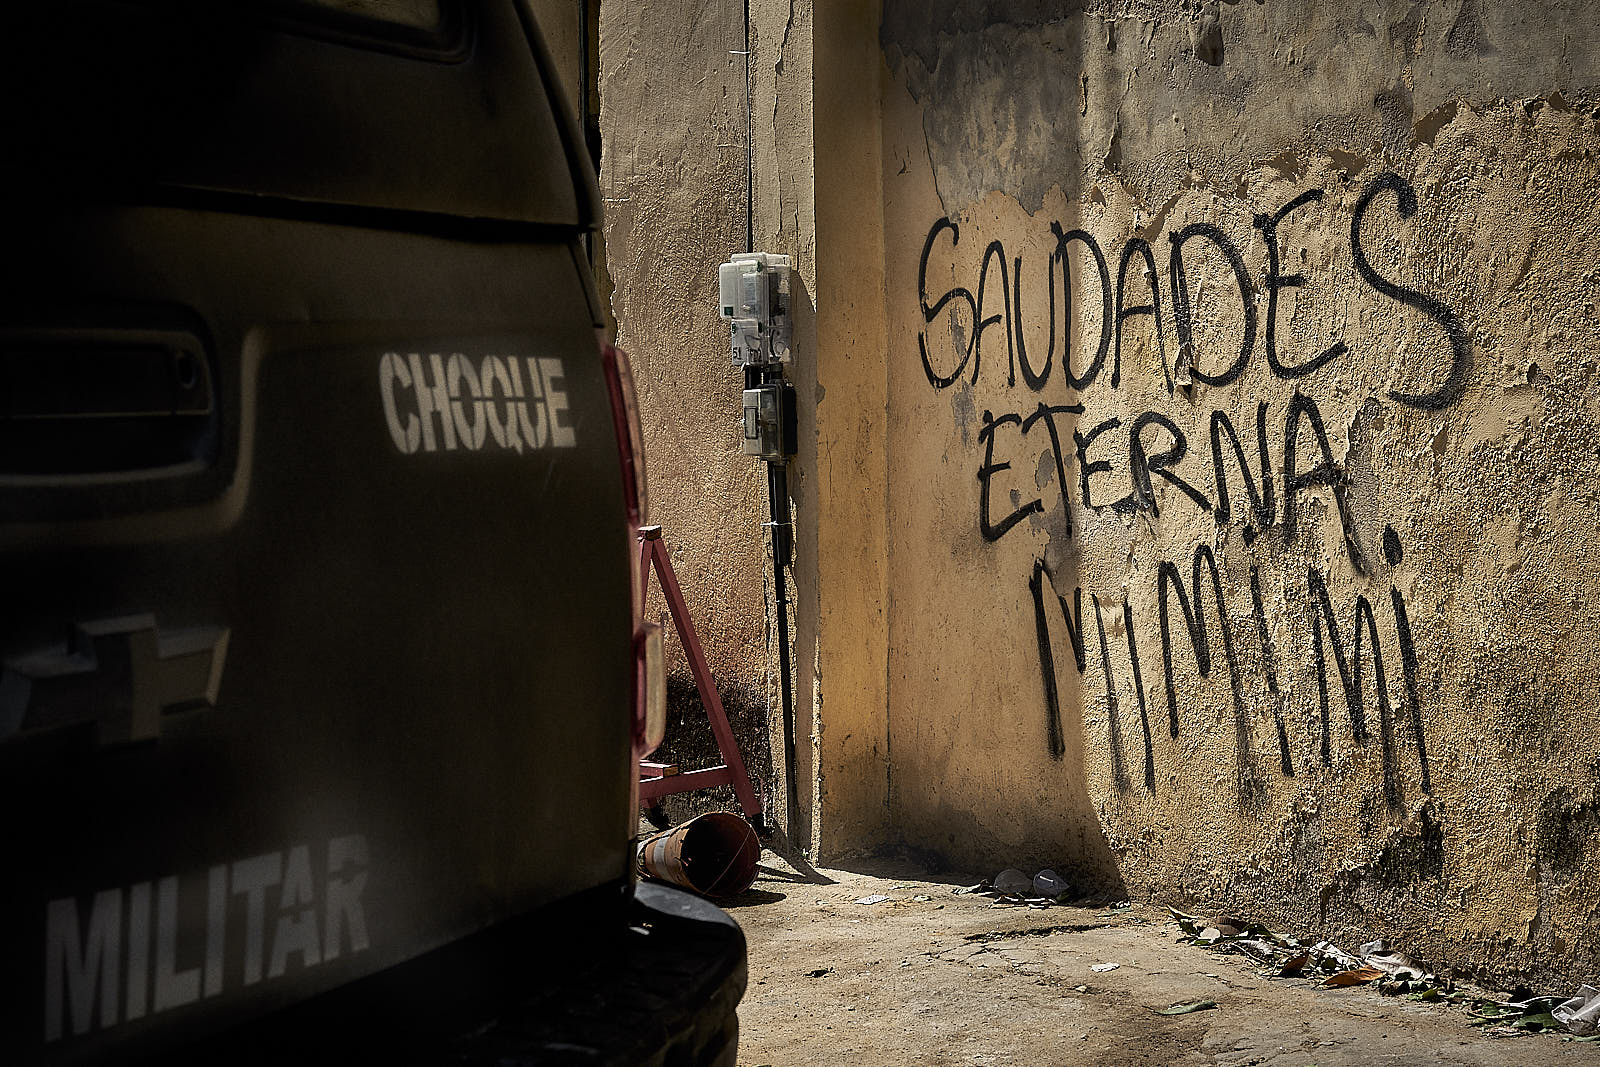 A police truck belonging to the Choque battalion is parked next to graffiti mourning the loss of one of the alleged traffickers killed in an operation in Fallet. (Photo C.H. Gardiner)